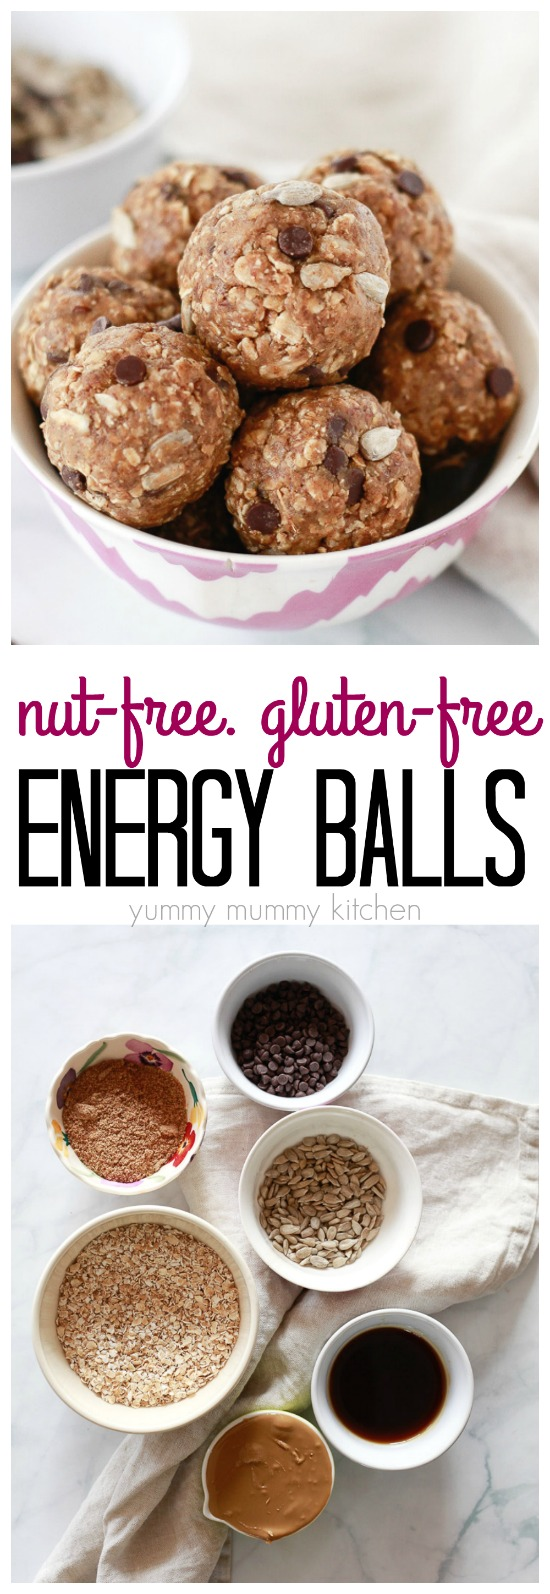 These delicious and easy to make energy balls are perfect for a quick lunch or packed in lunch boxes for kids.